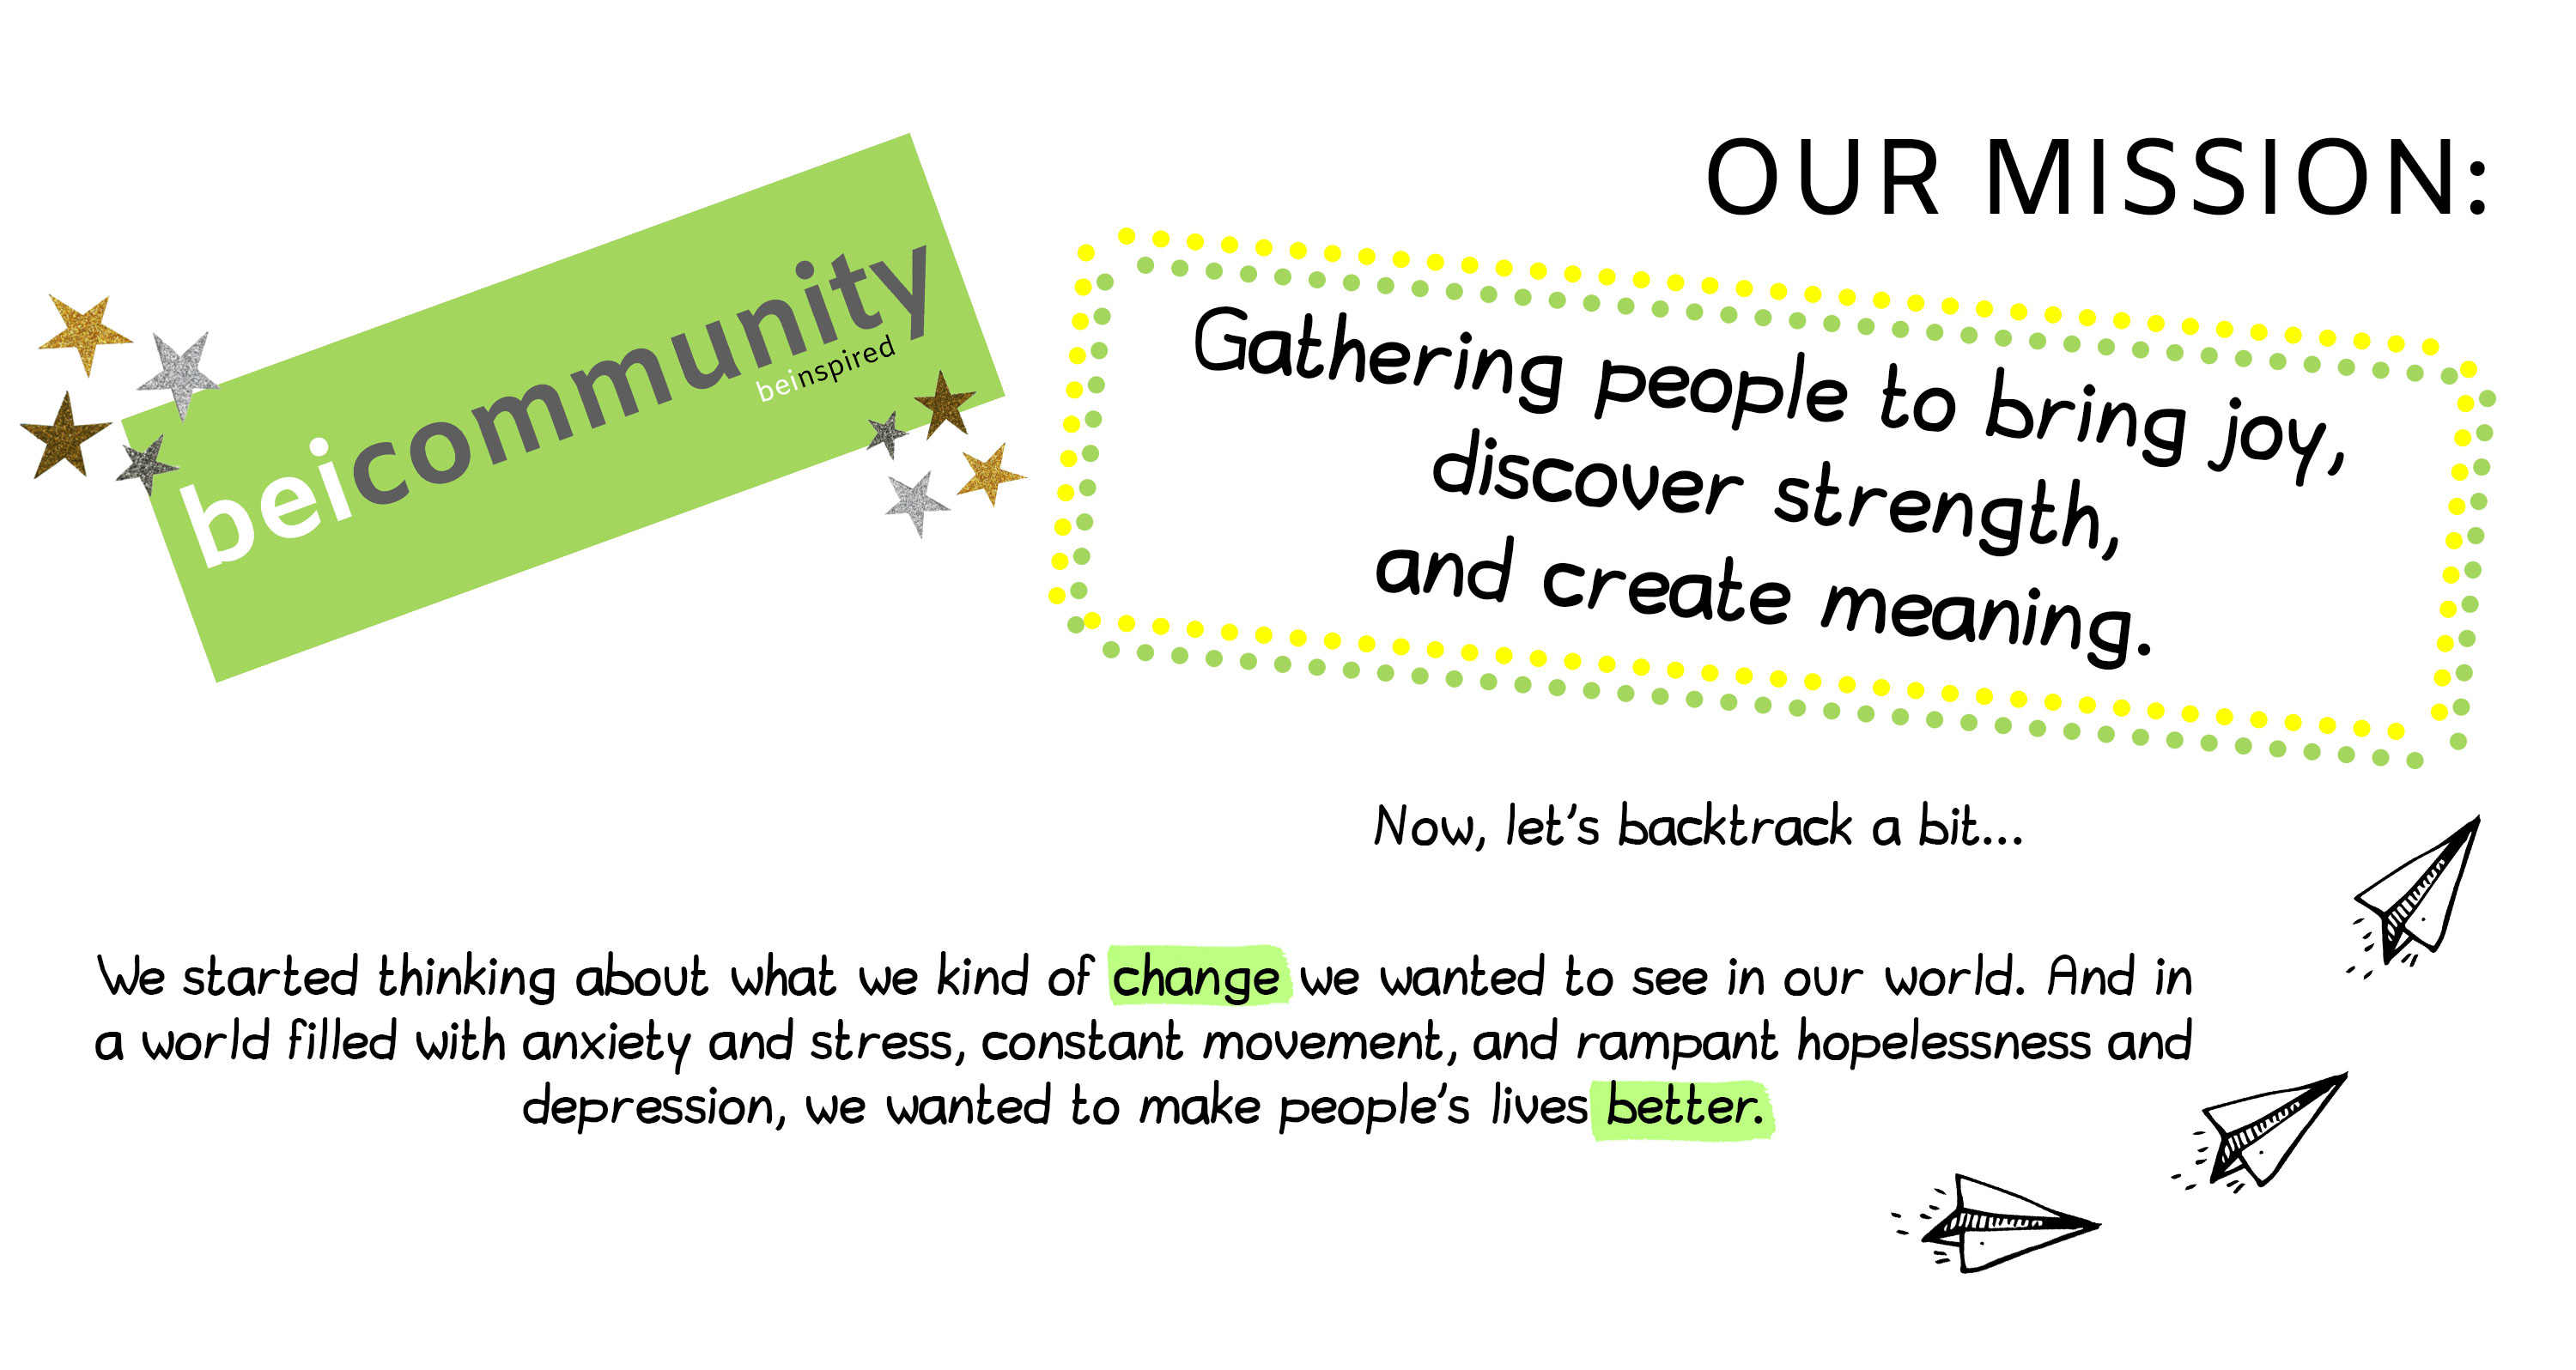 Our Mission: Gathering people to bring joy, discover strength, and create meaning. Now let's backtrack a bit... We started thinking about what we kind of change we wanted to see in our world. And in a world filled with anxiety and stress, constant movement, and rampant hopelessness and depression, we wanted to make people's lives better.